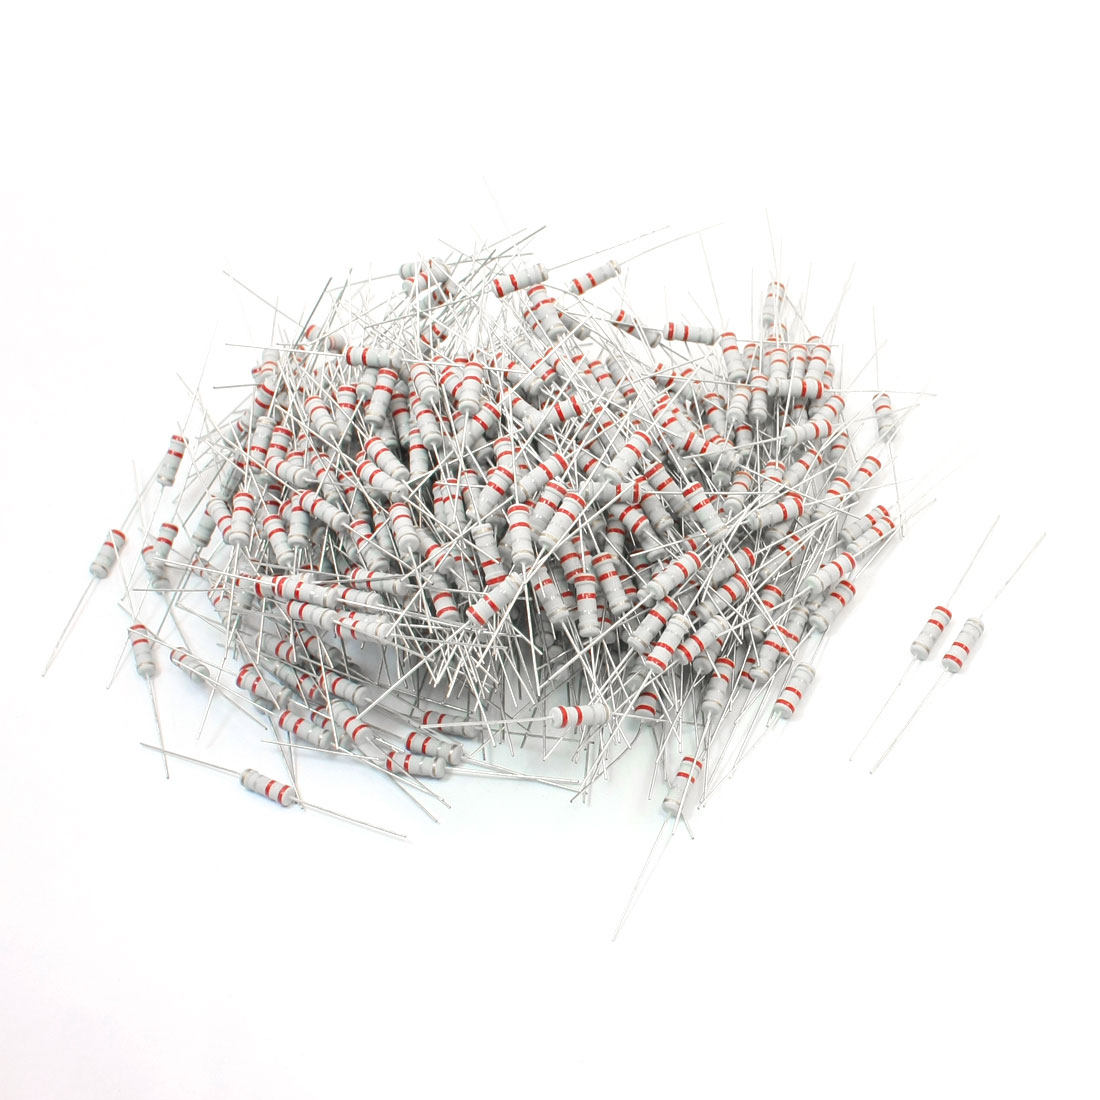 500Pcs 1W 0.22 Ohm 5% Tolerance Metal Oxide Film Resistor Axial Lead